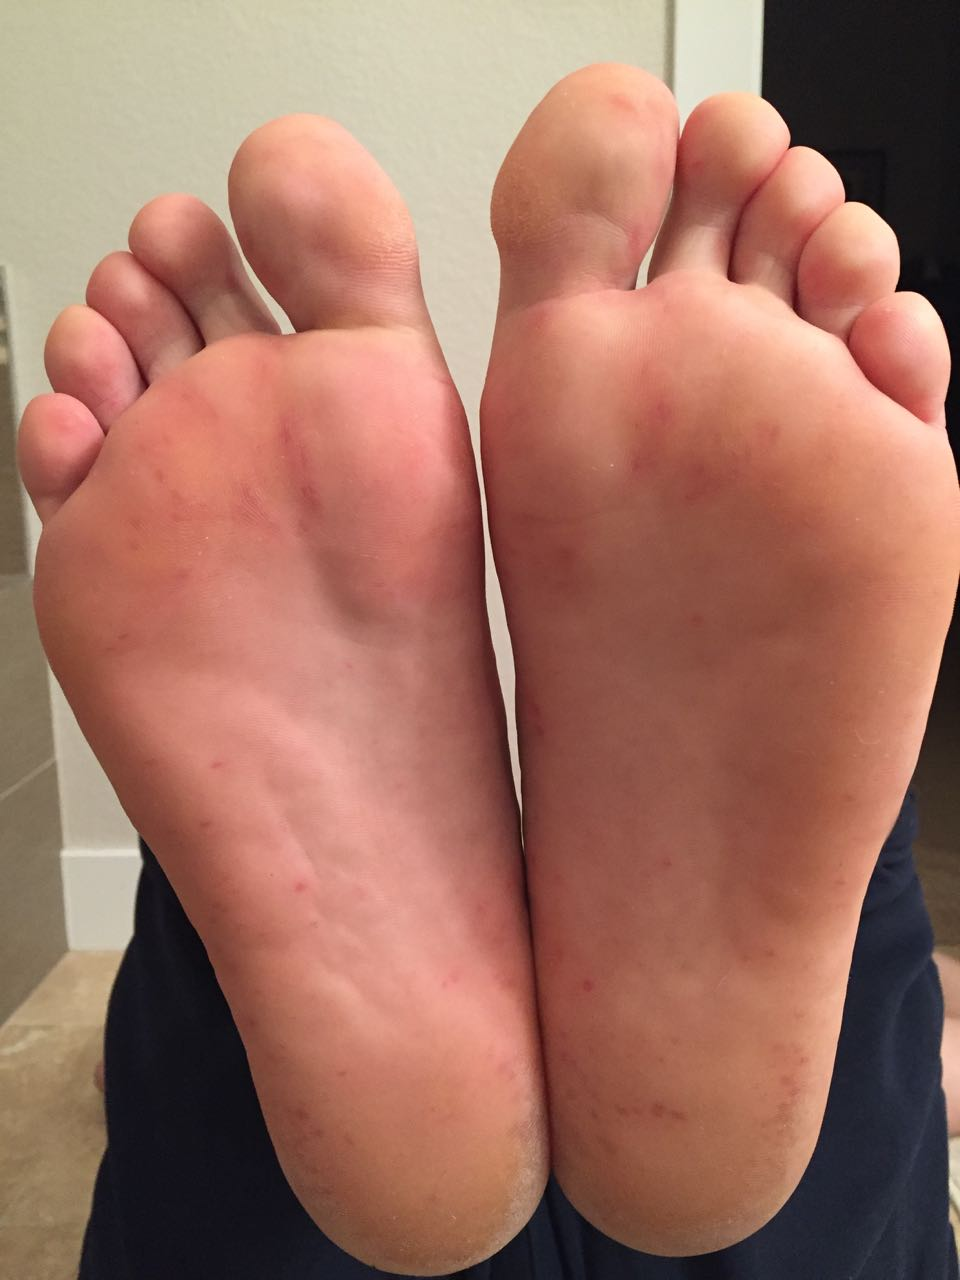 Feet Tuesday